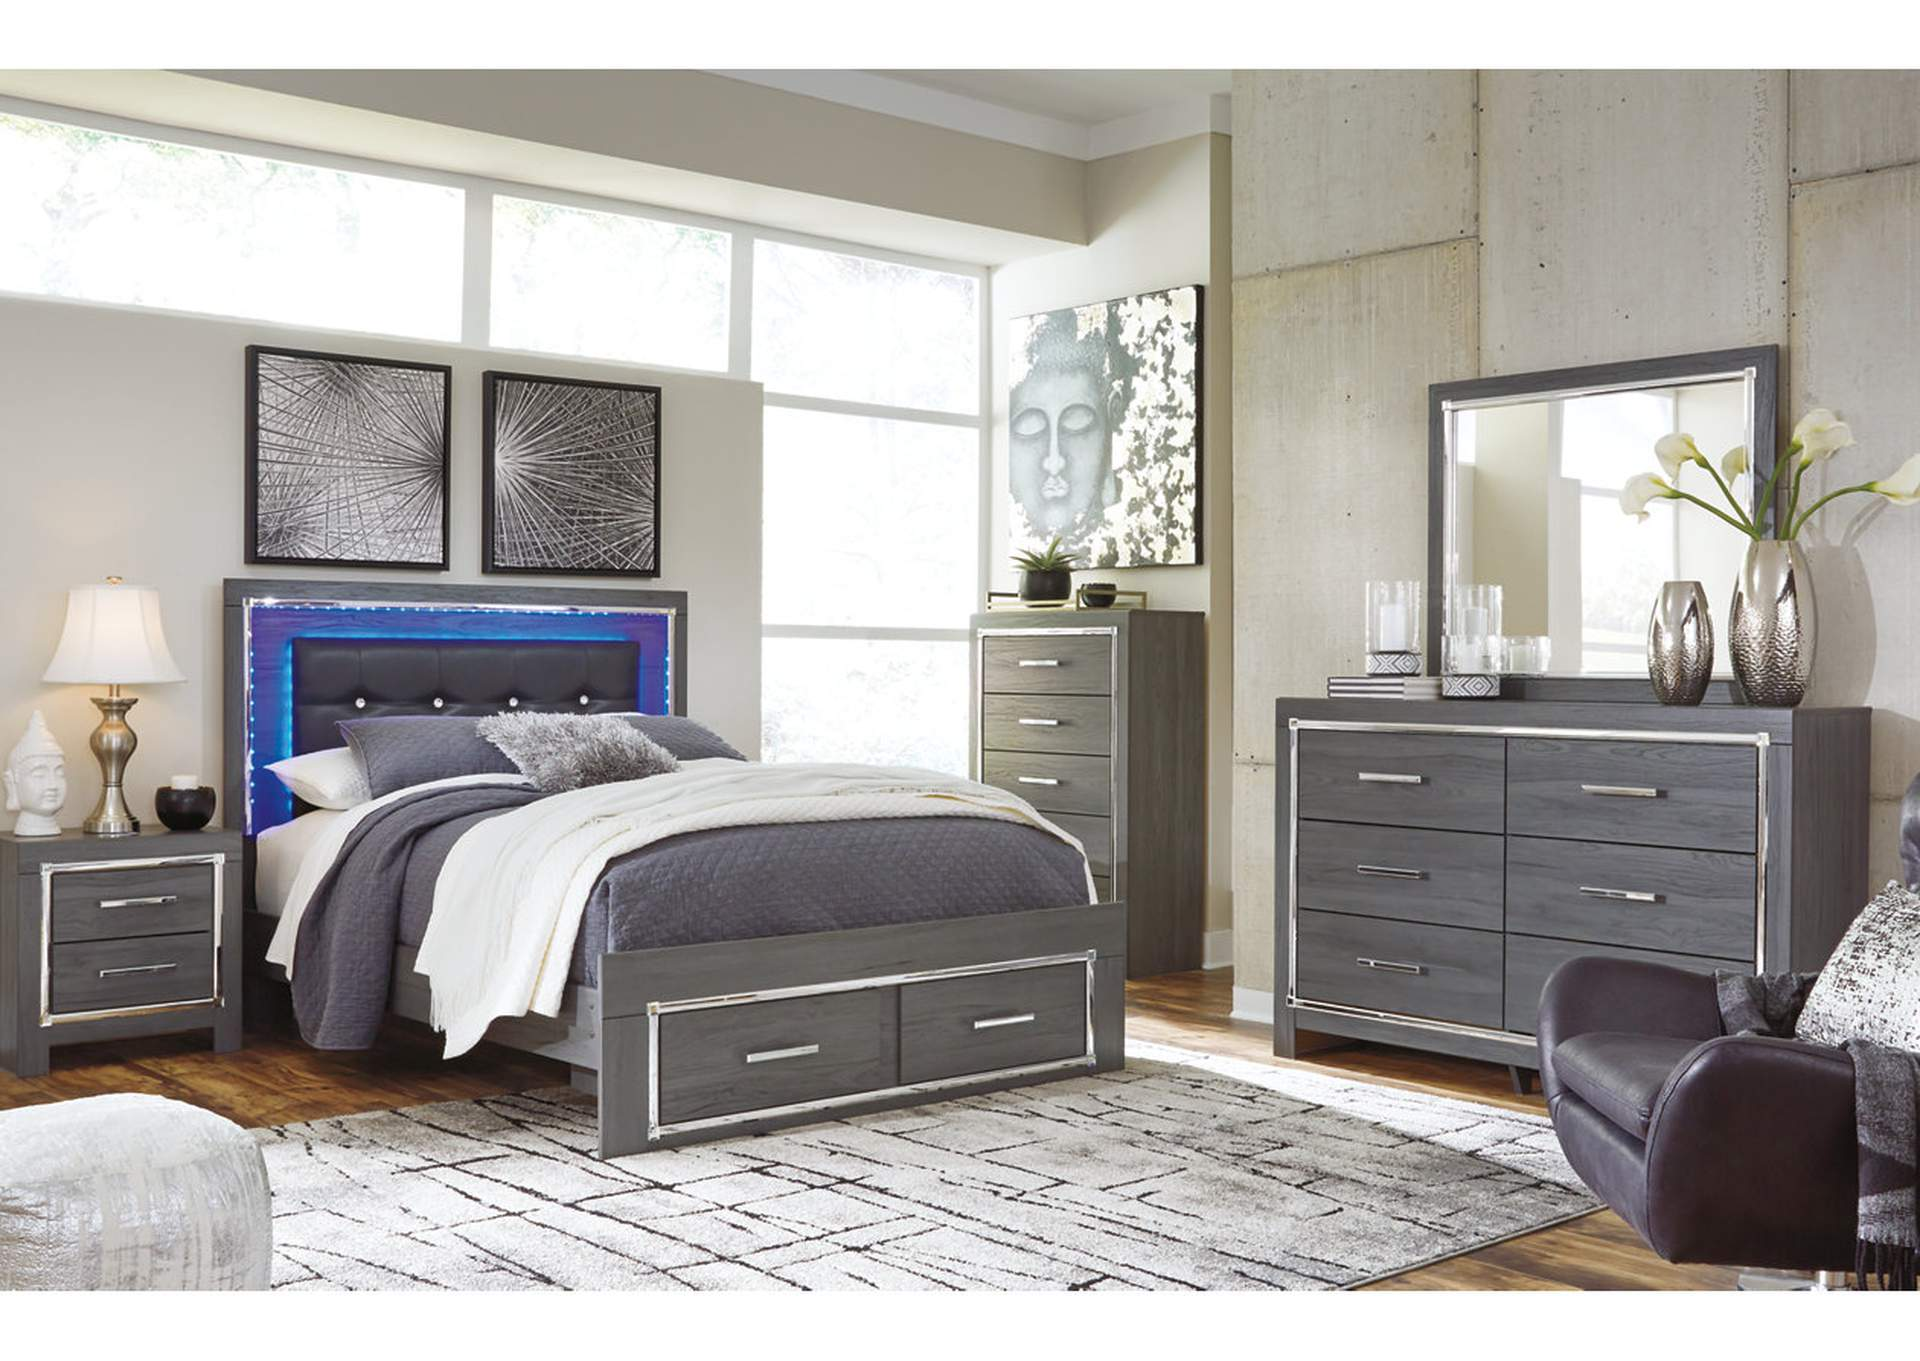 Lodanna King Panel Bed with 2 Storage Drawers, Dresser and Mirror,Signature Design By Ashley